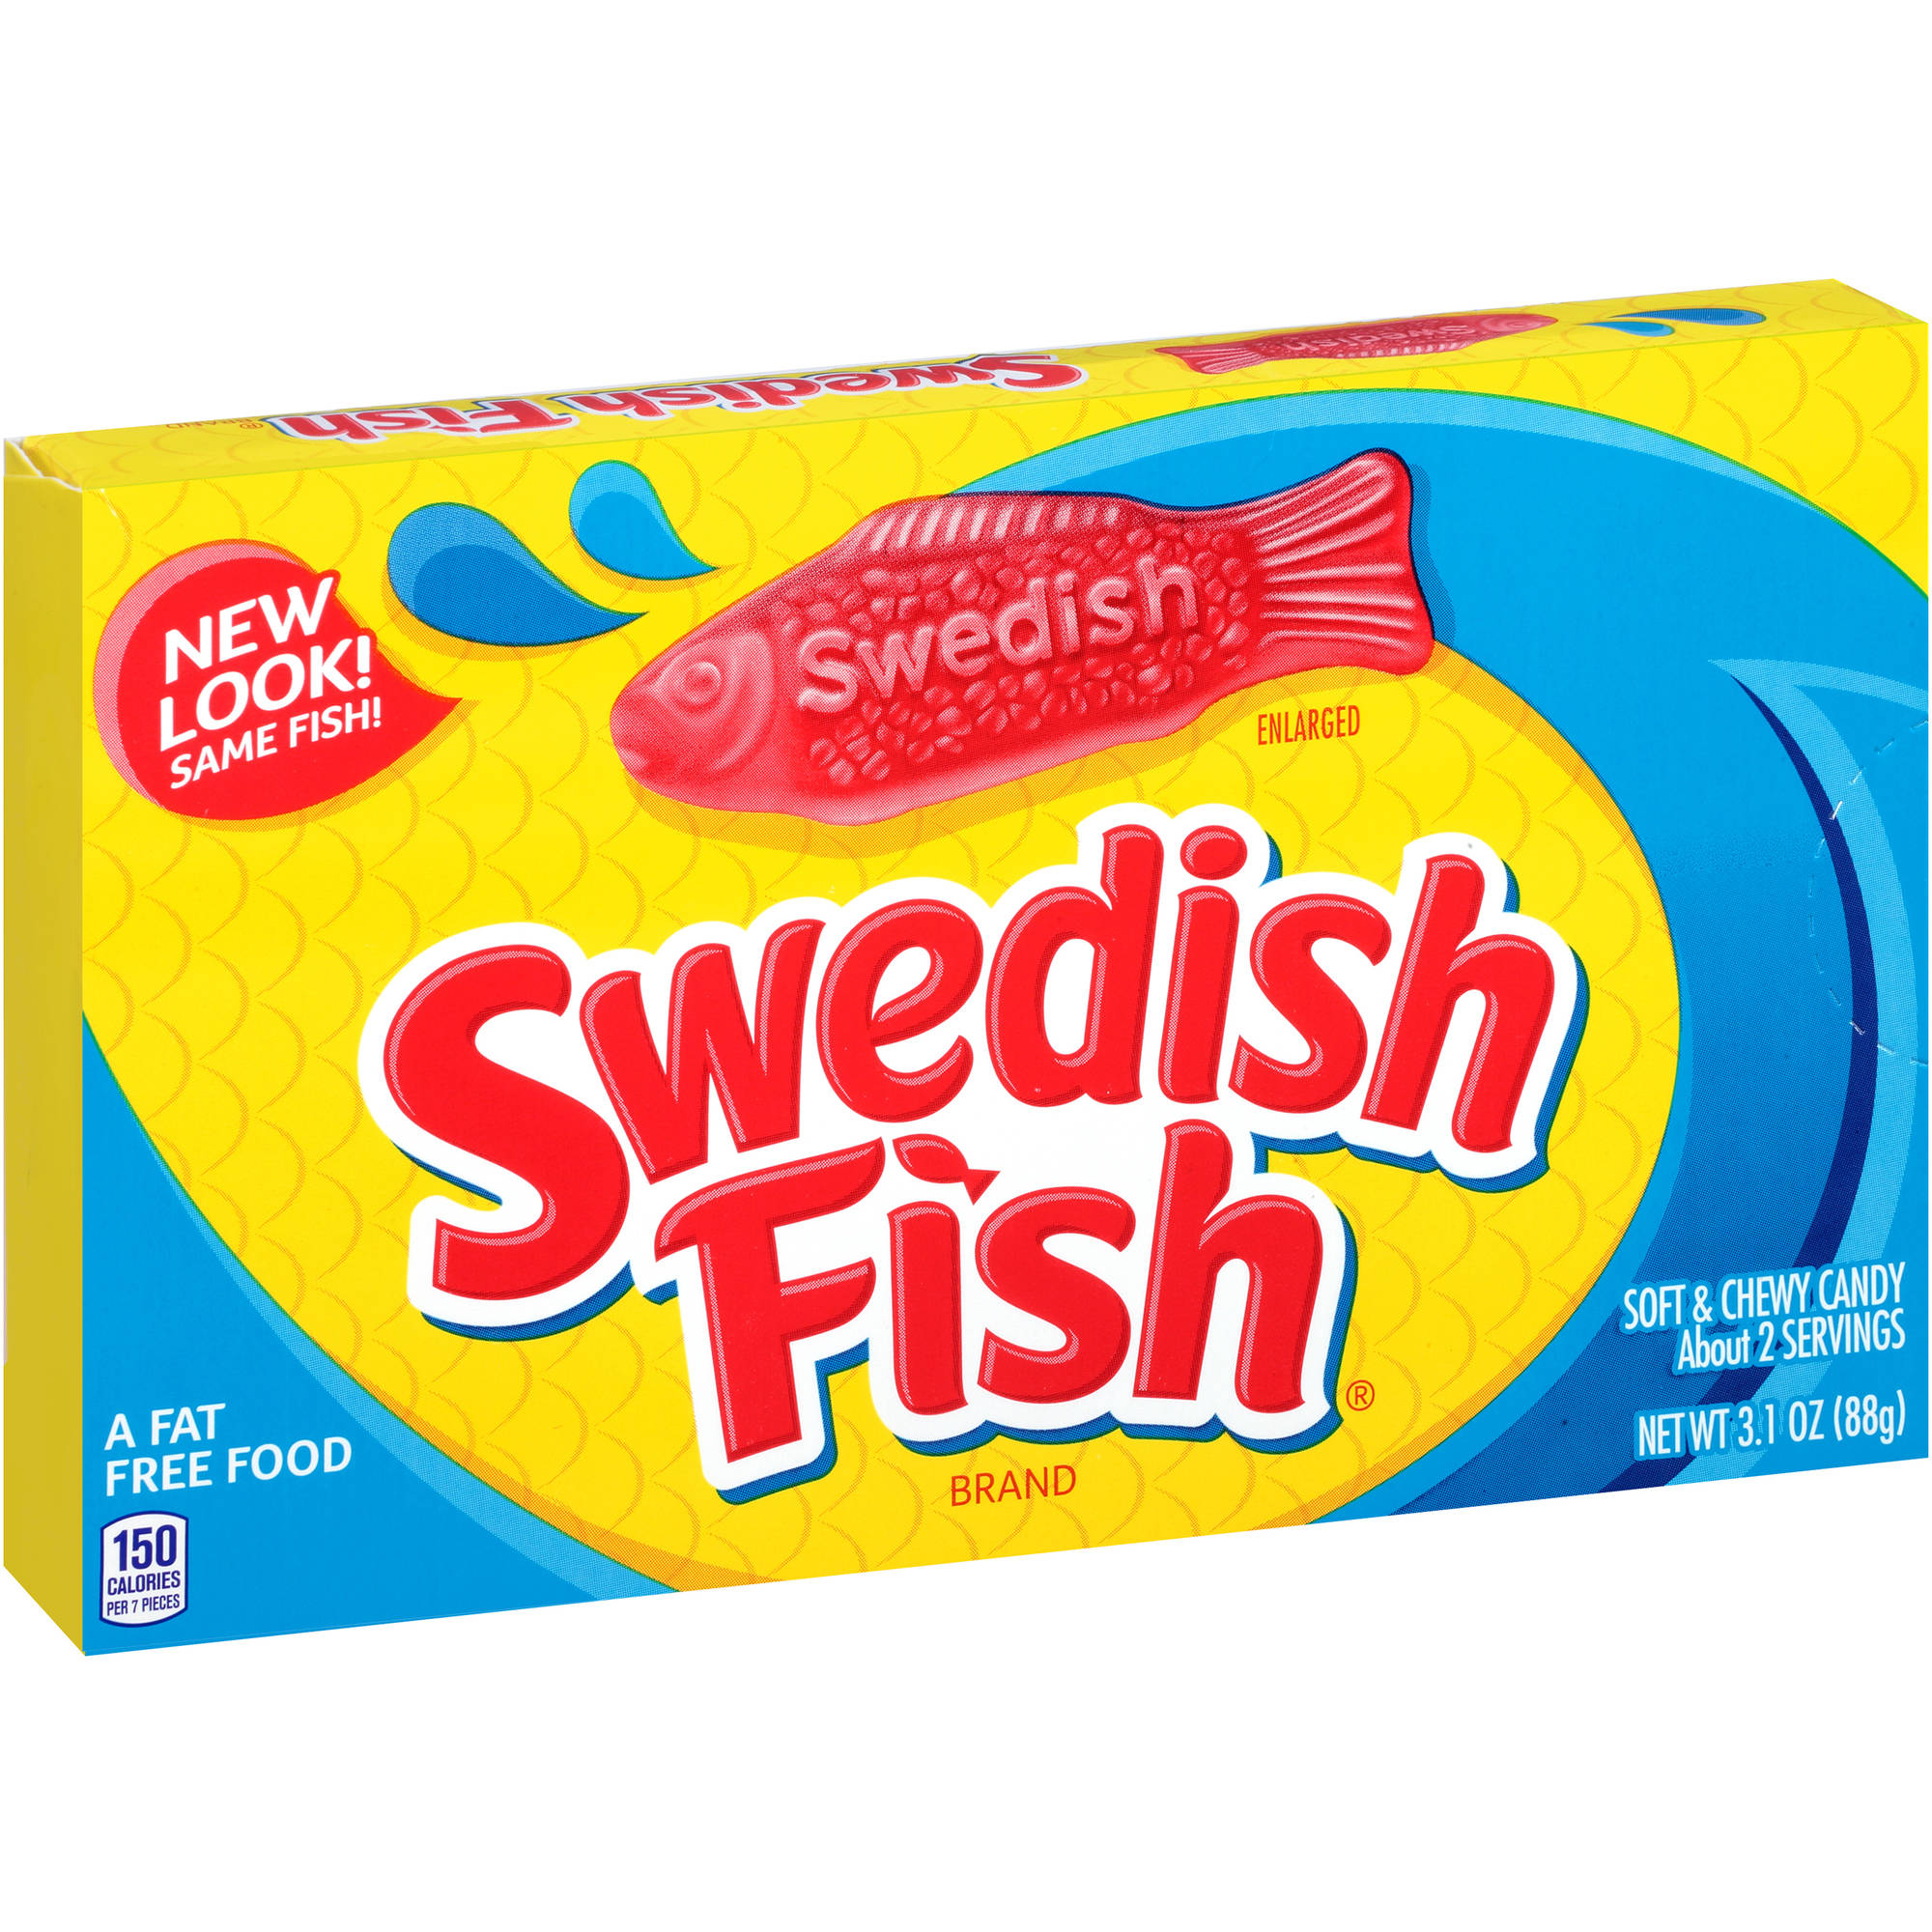 Swedish Fish Soft & Chewy Candy, 3.1 oz